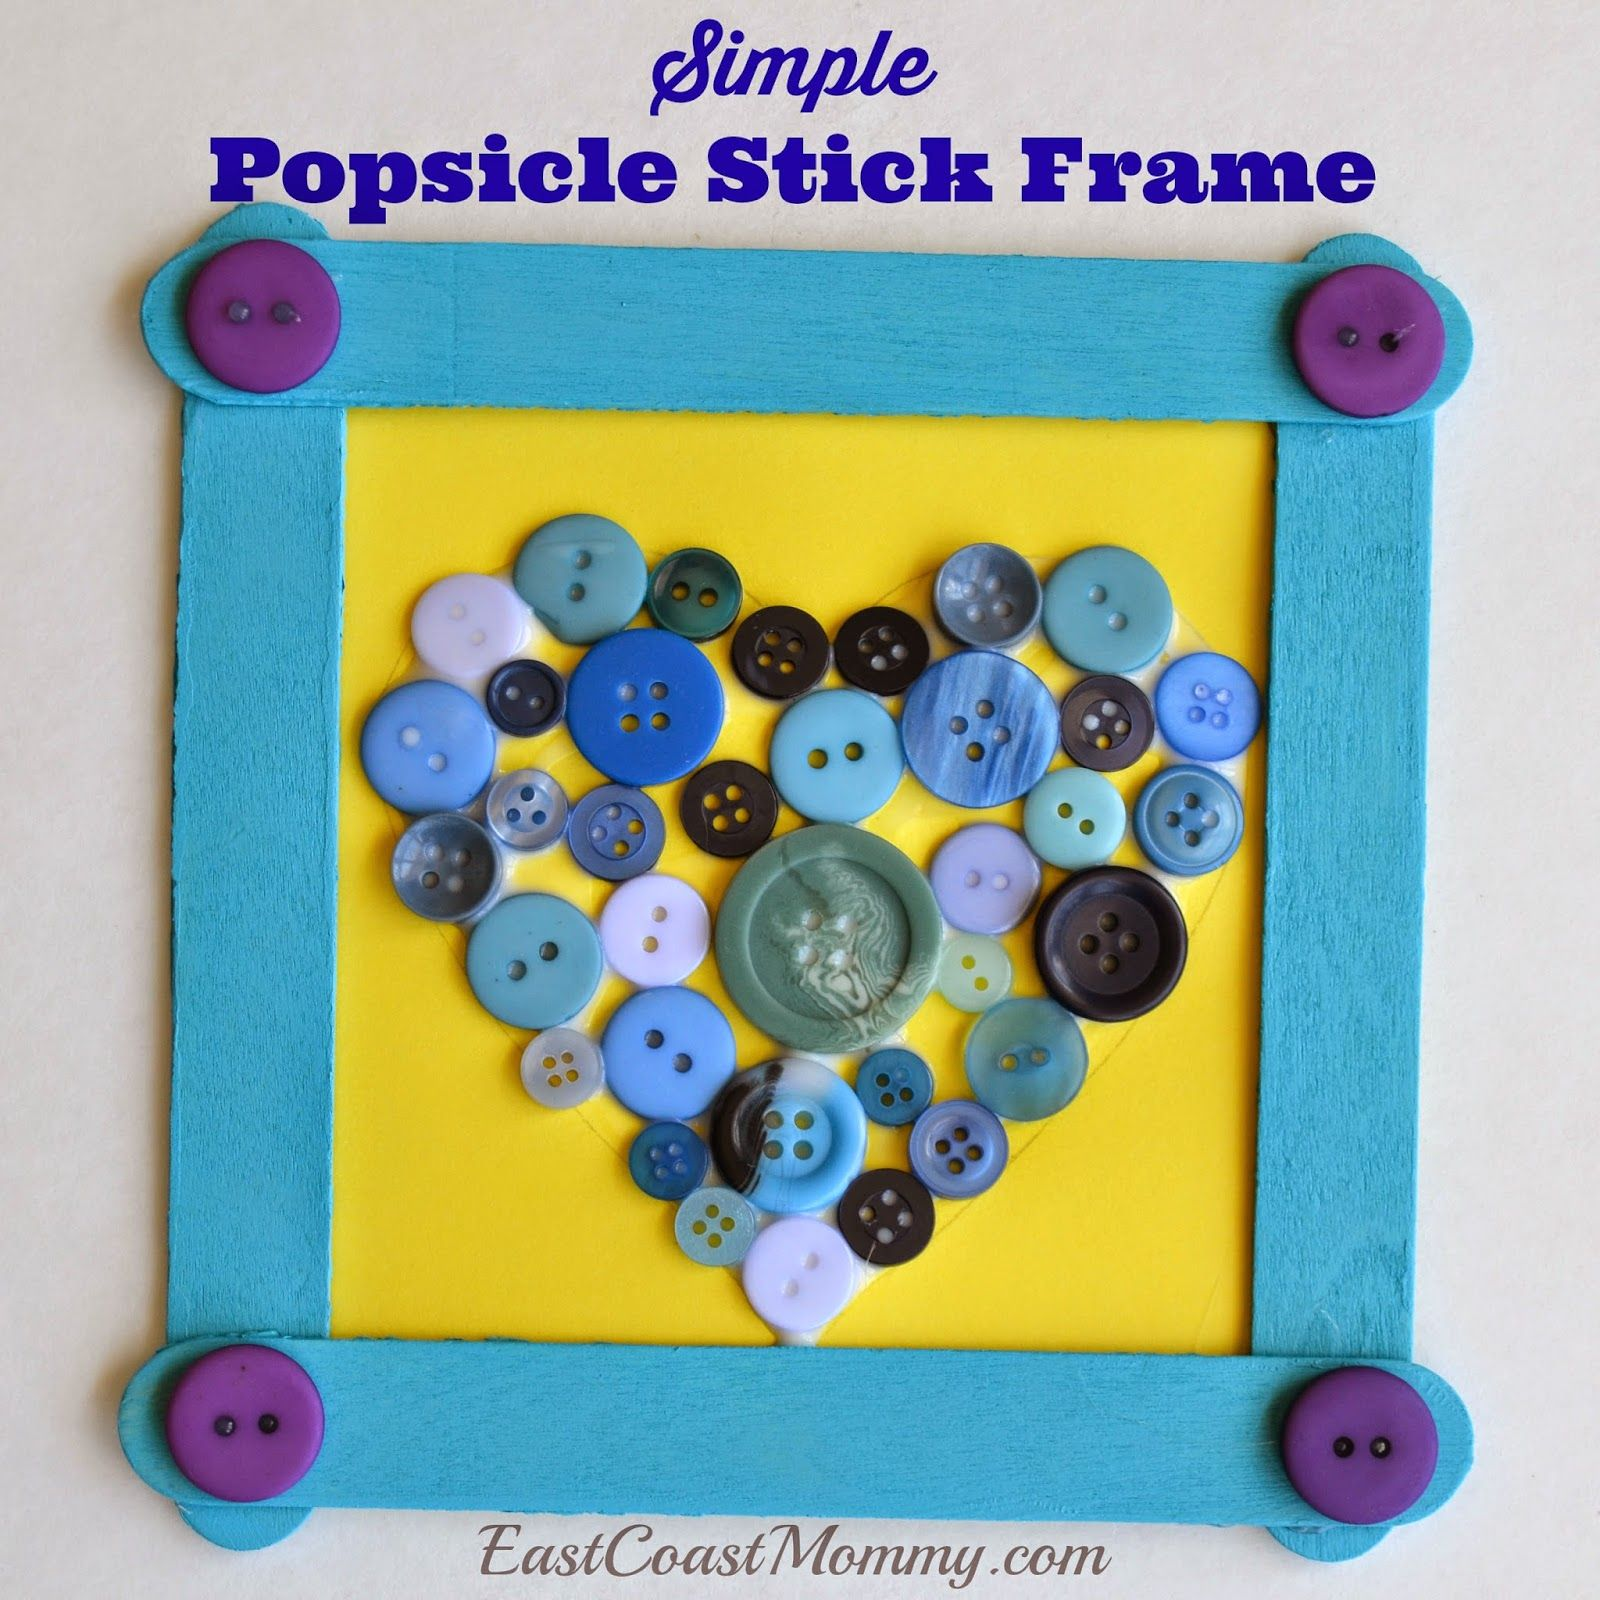 Craft Sticks Or Popsicle Are Incredibly Versatile So Bring Them All Out To Make Some Fun And Easy Mothers Day Crafts For Mom